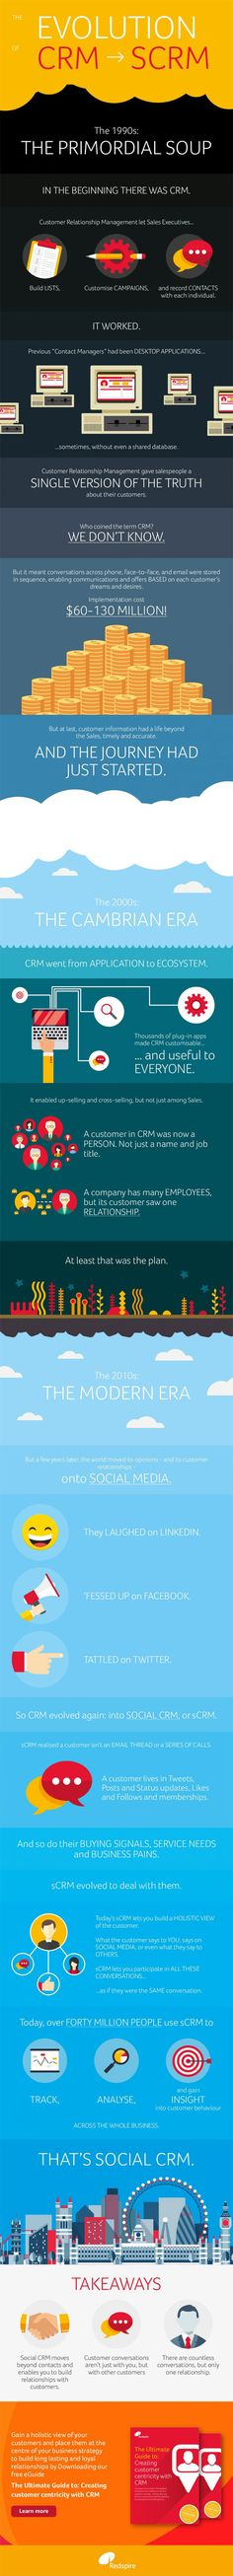 New Emerging Trends Across Online Businesses: The Social CRM (Infographic)